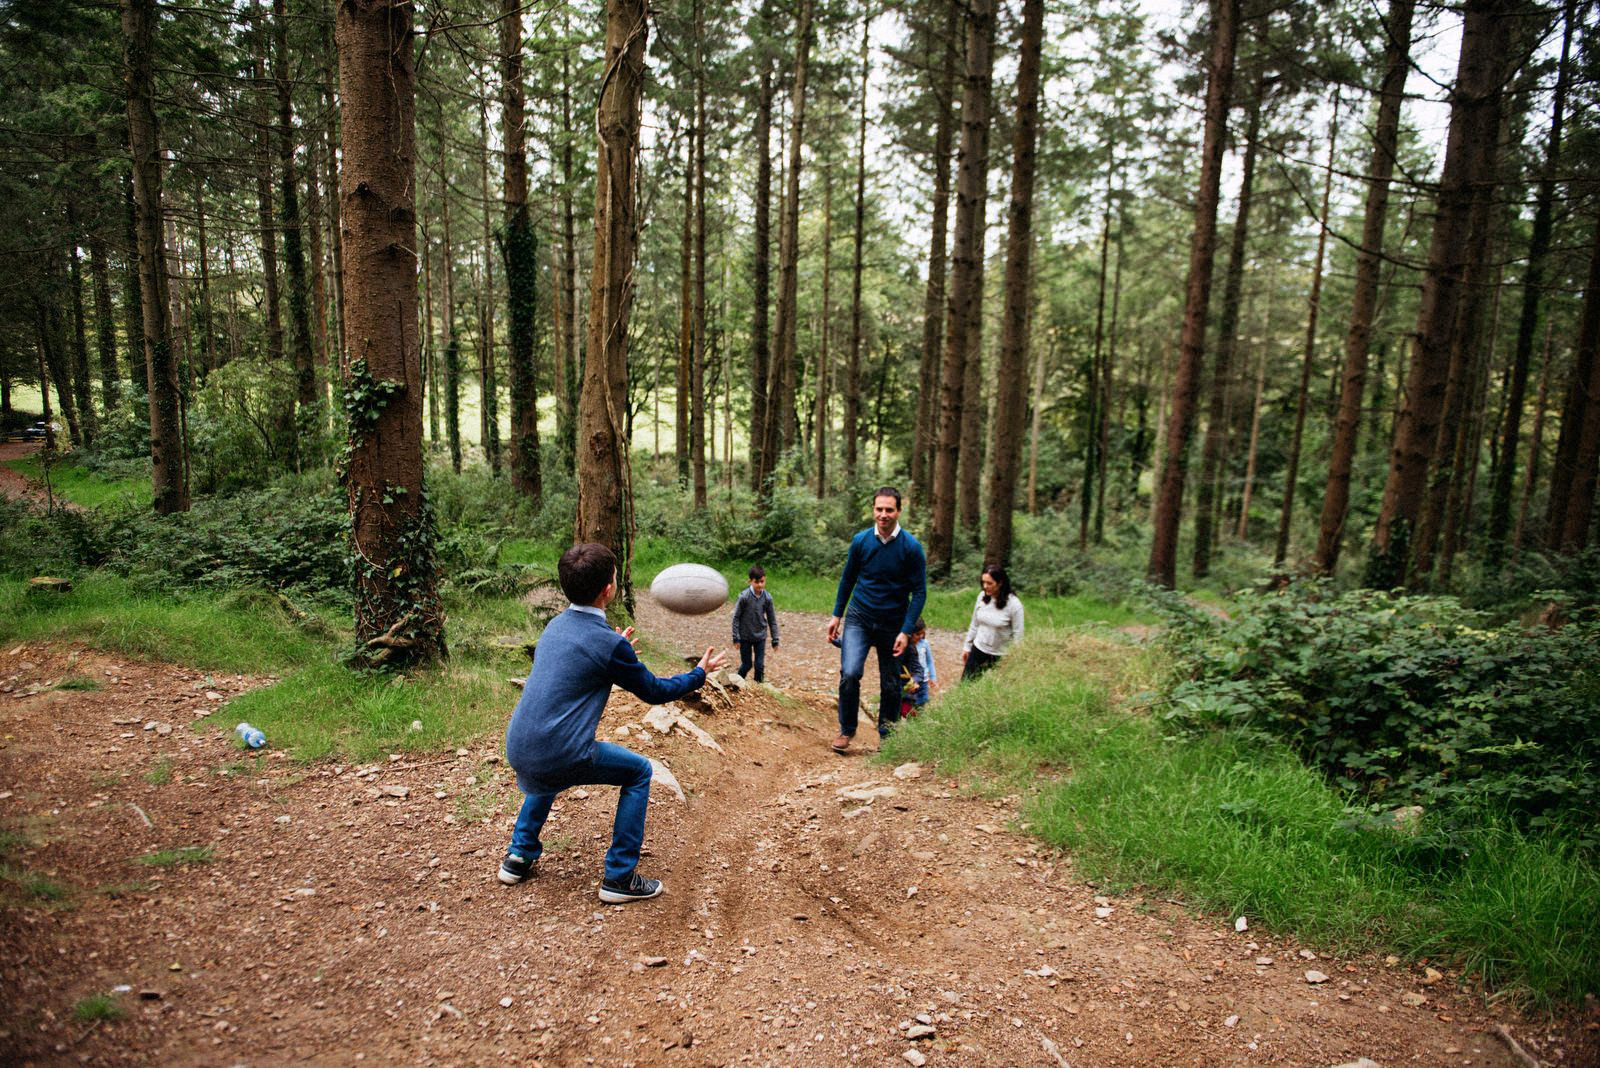 family in the woods throwing a ball